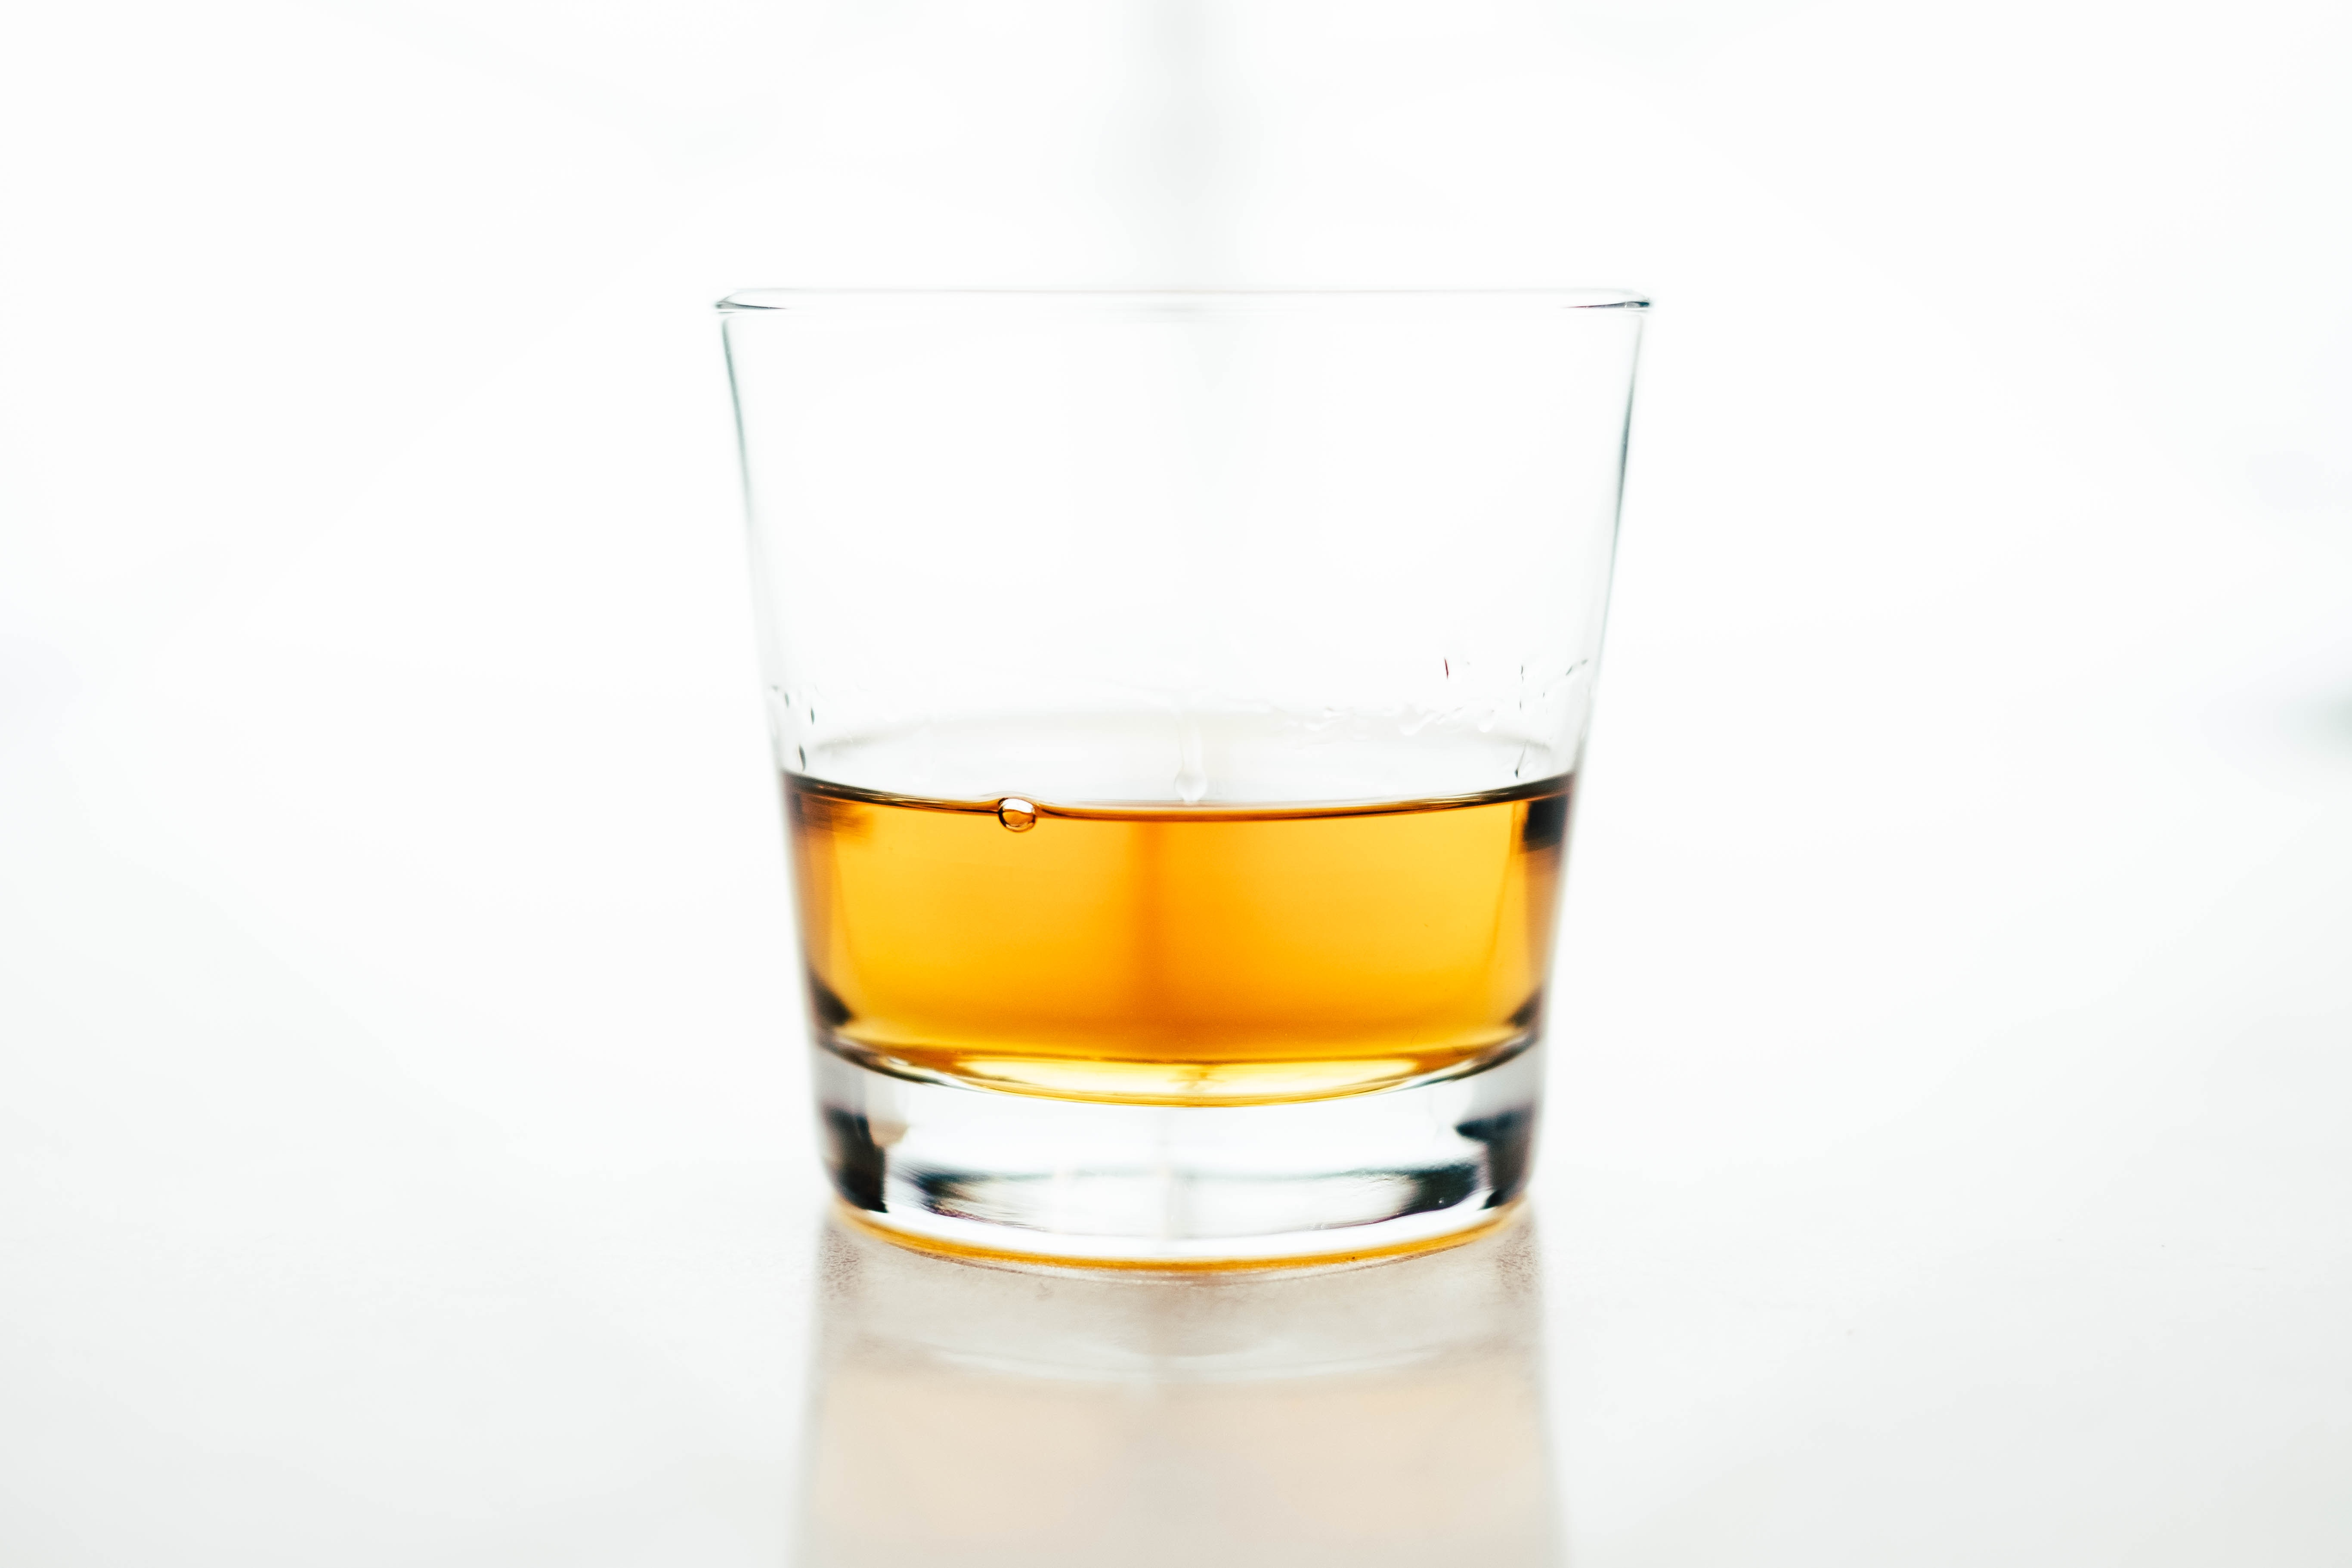 business negotiation alcohol Information about starting up and running a business in the uk, including help if you're self employed or a sole trader.